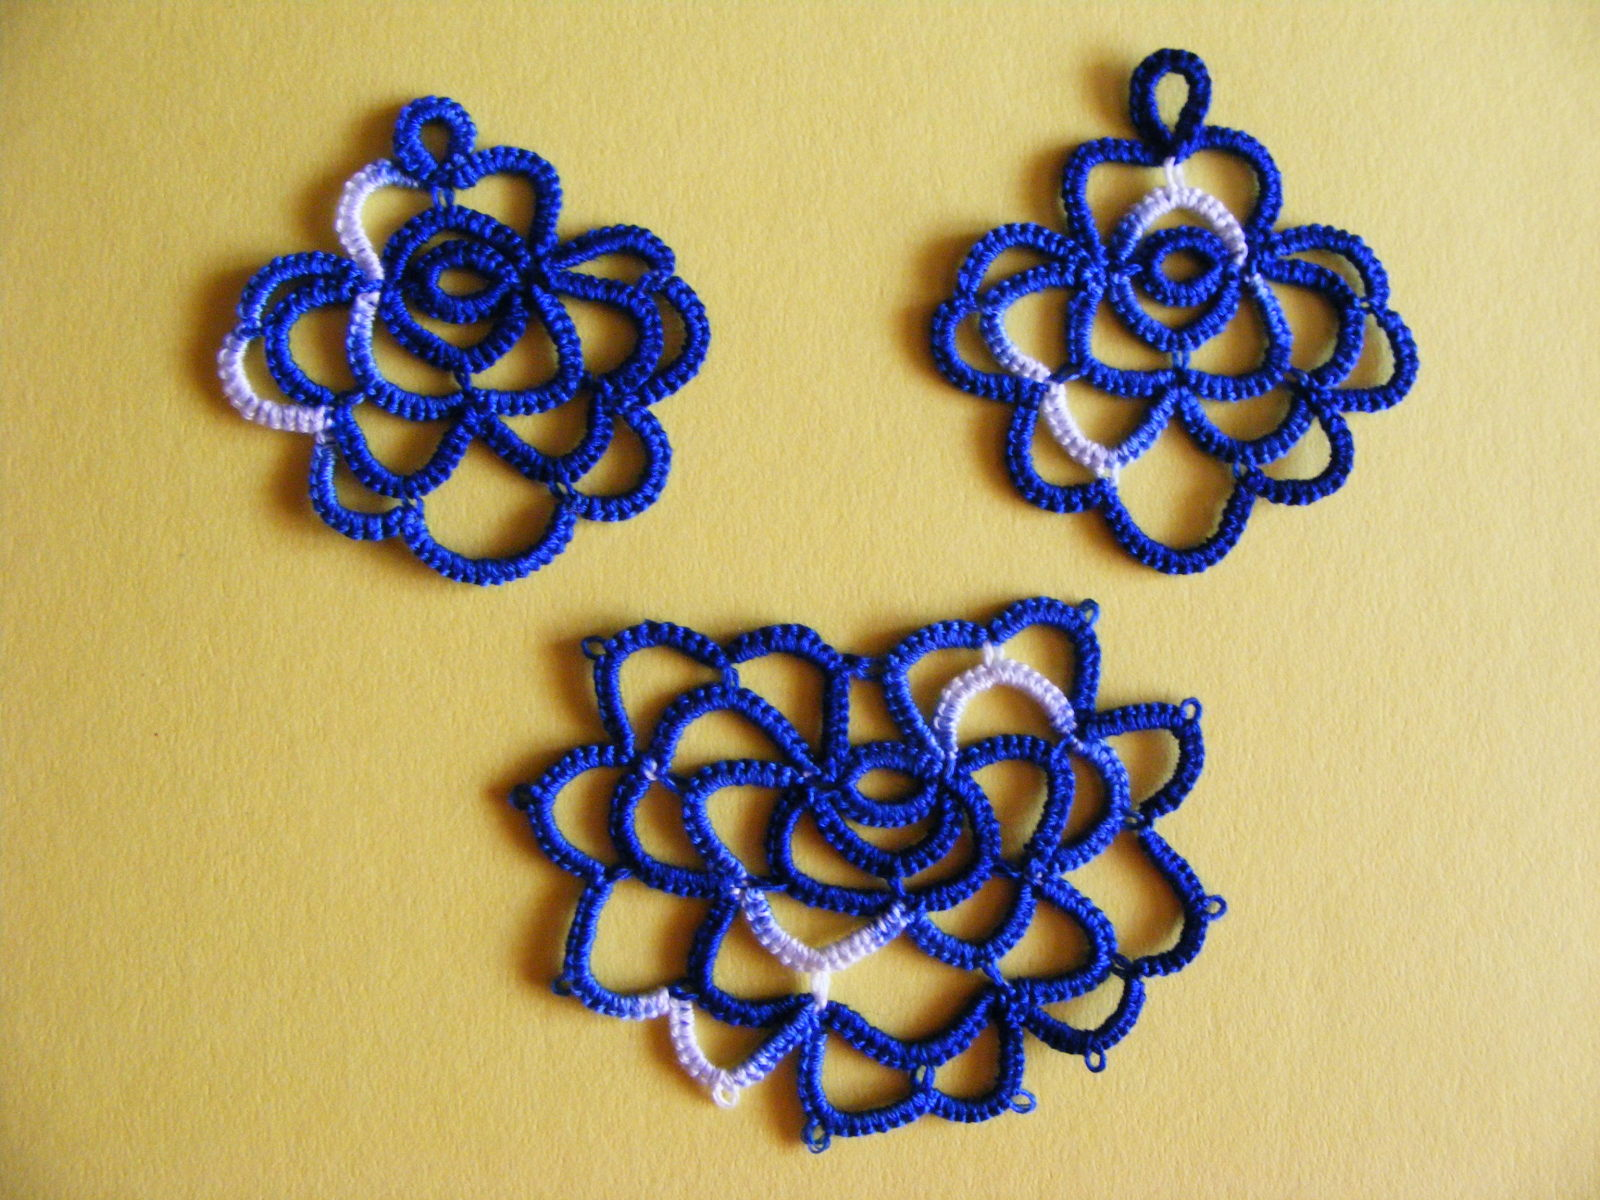 Tatting - Pagina 4 2nm2k36